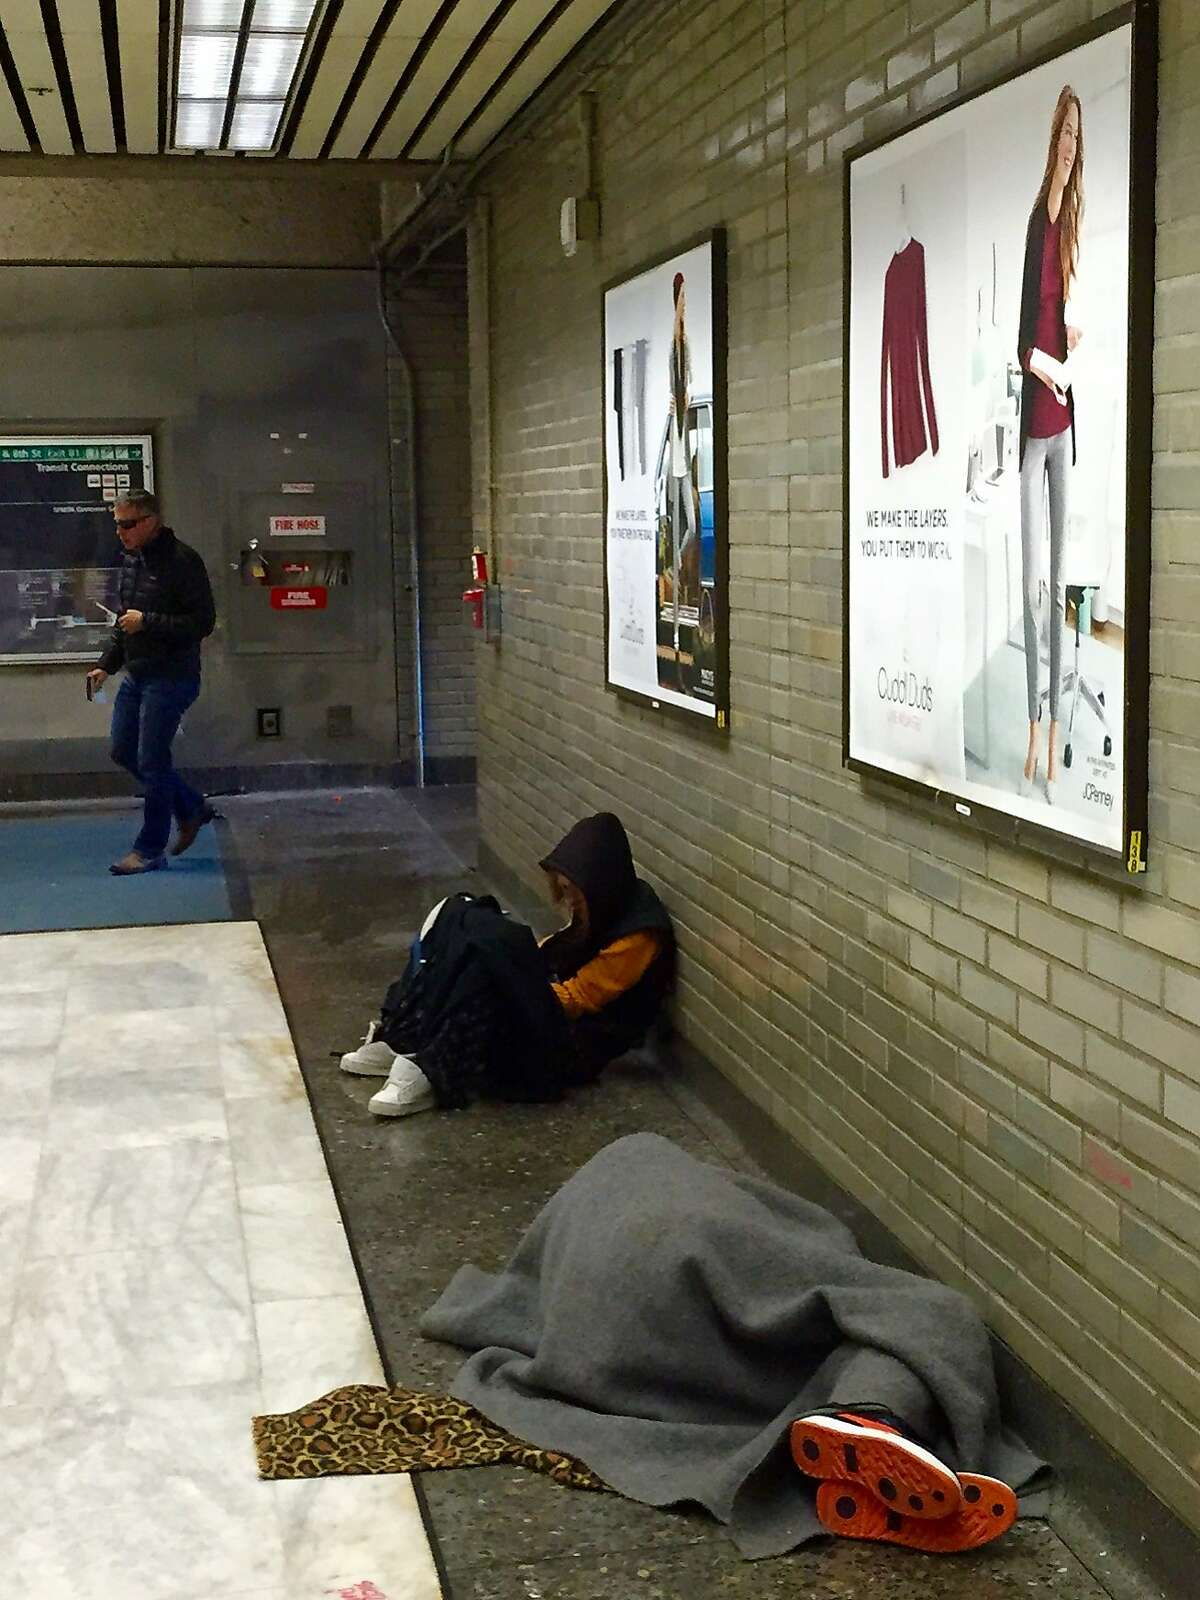 Homeless take refuge inside the Civic Center BART station. The transit agency is taking new steps to clean up its stations, including keeping homeless out overnight.